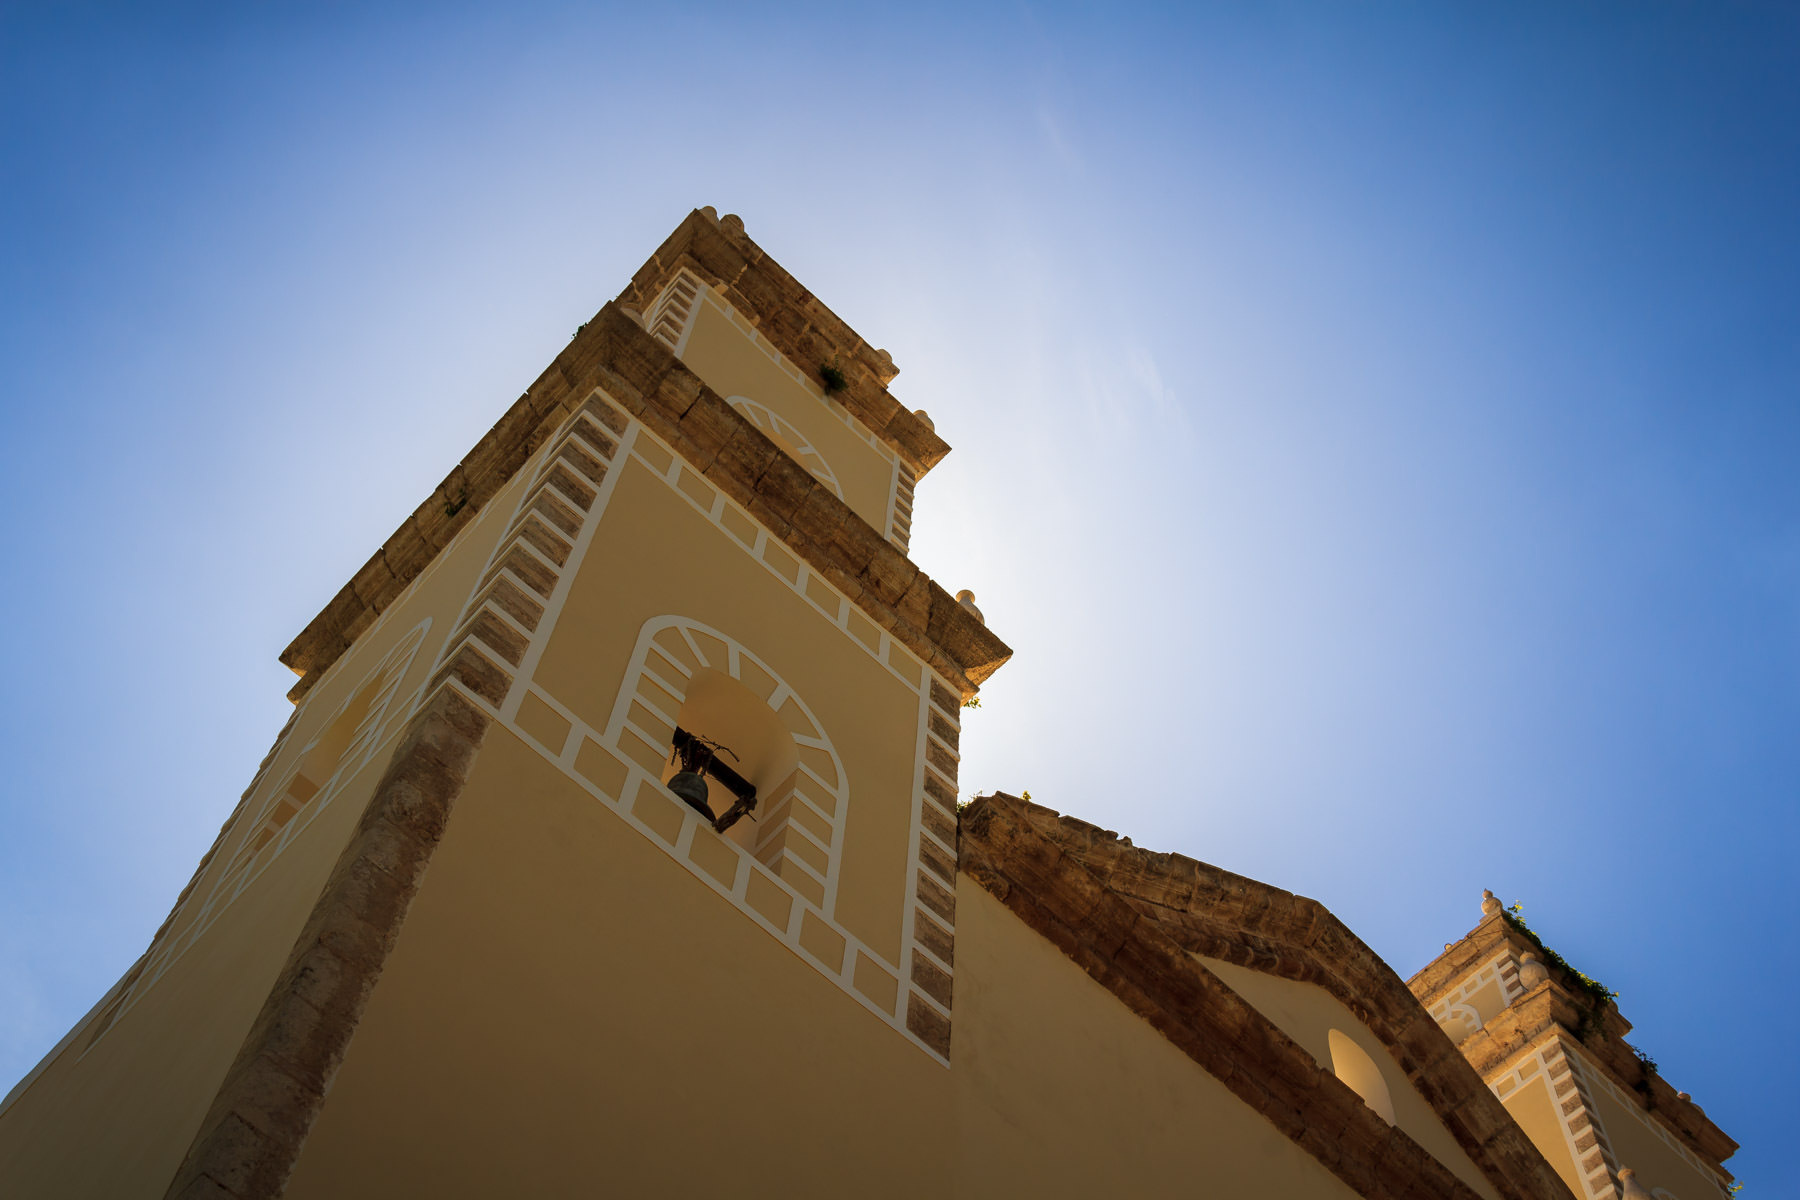 The steeple of the Catholic church in the tiny town of Dzemul, Yucatan, Mexico, obscures the midday sun.